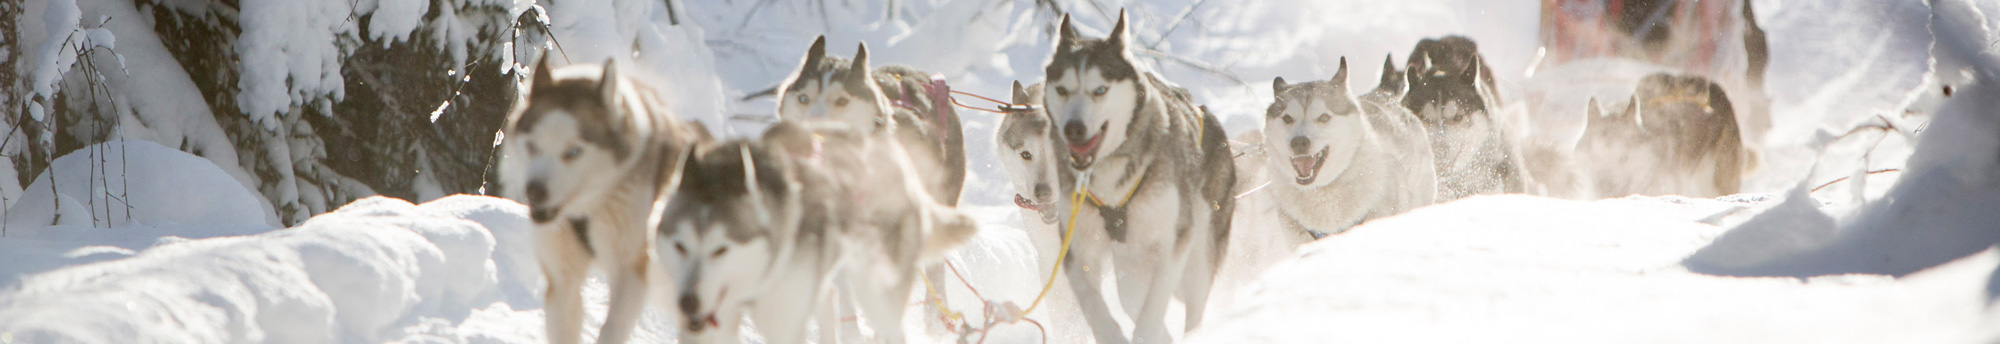 Mushing - Andorre